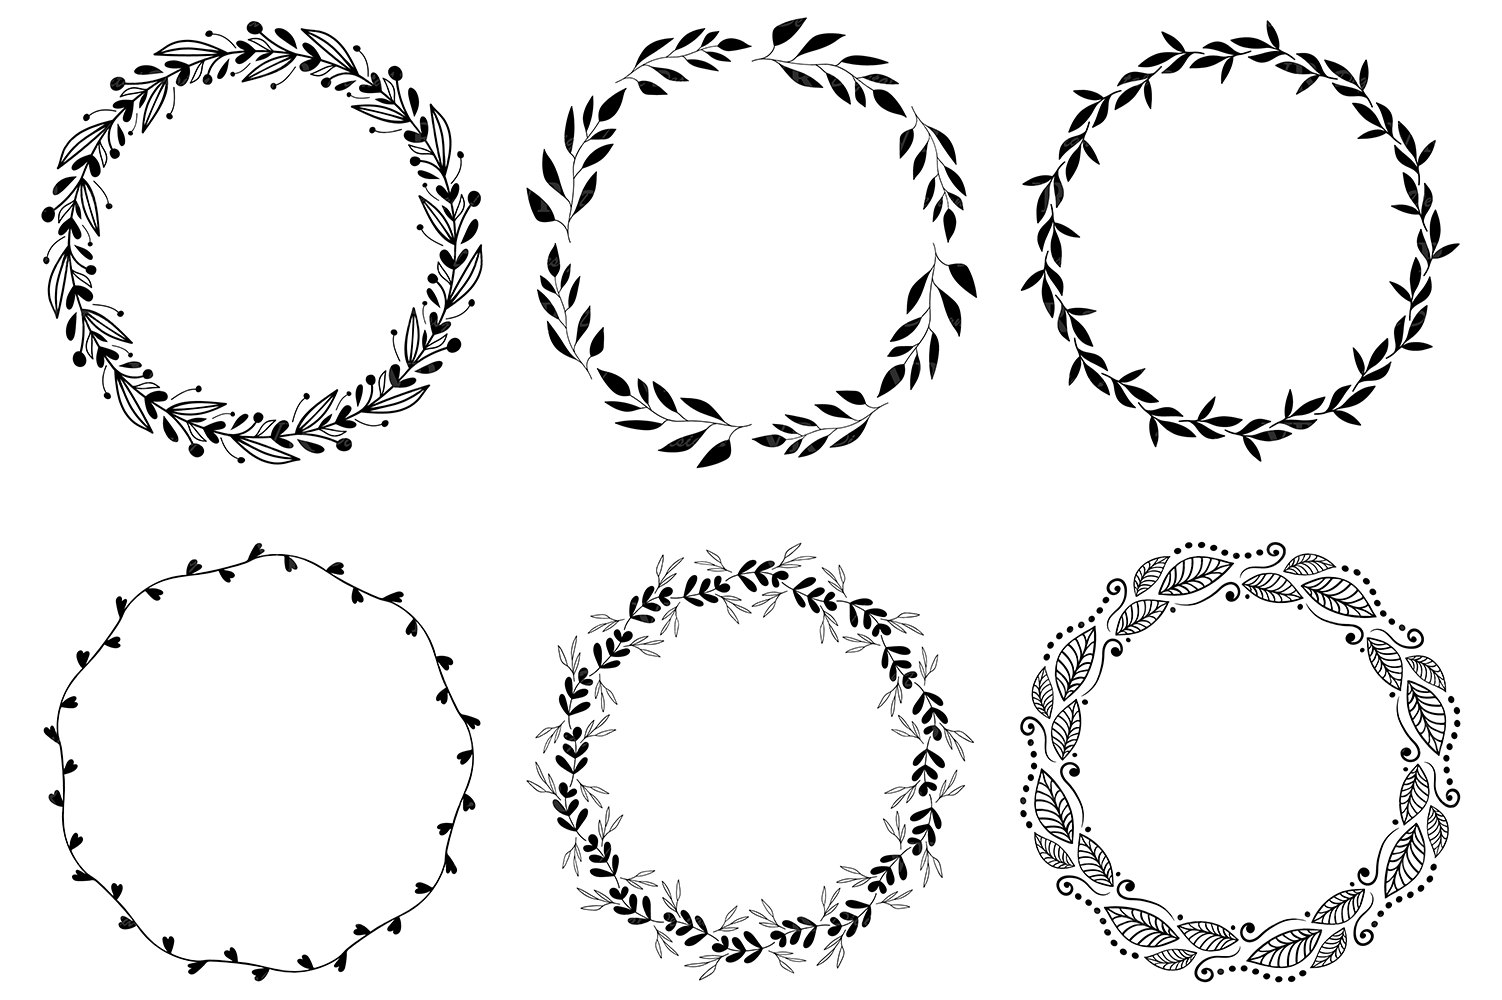 Wreaths Clipart, Hand drawn black design elements, Digital wreath, laurels, leaves and branches, Wedding clipart, Vector example image 3